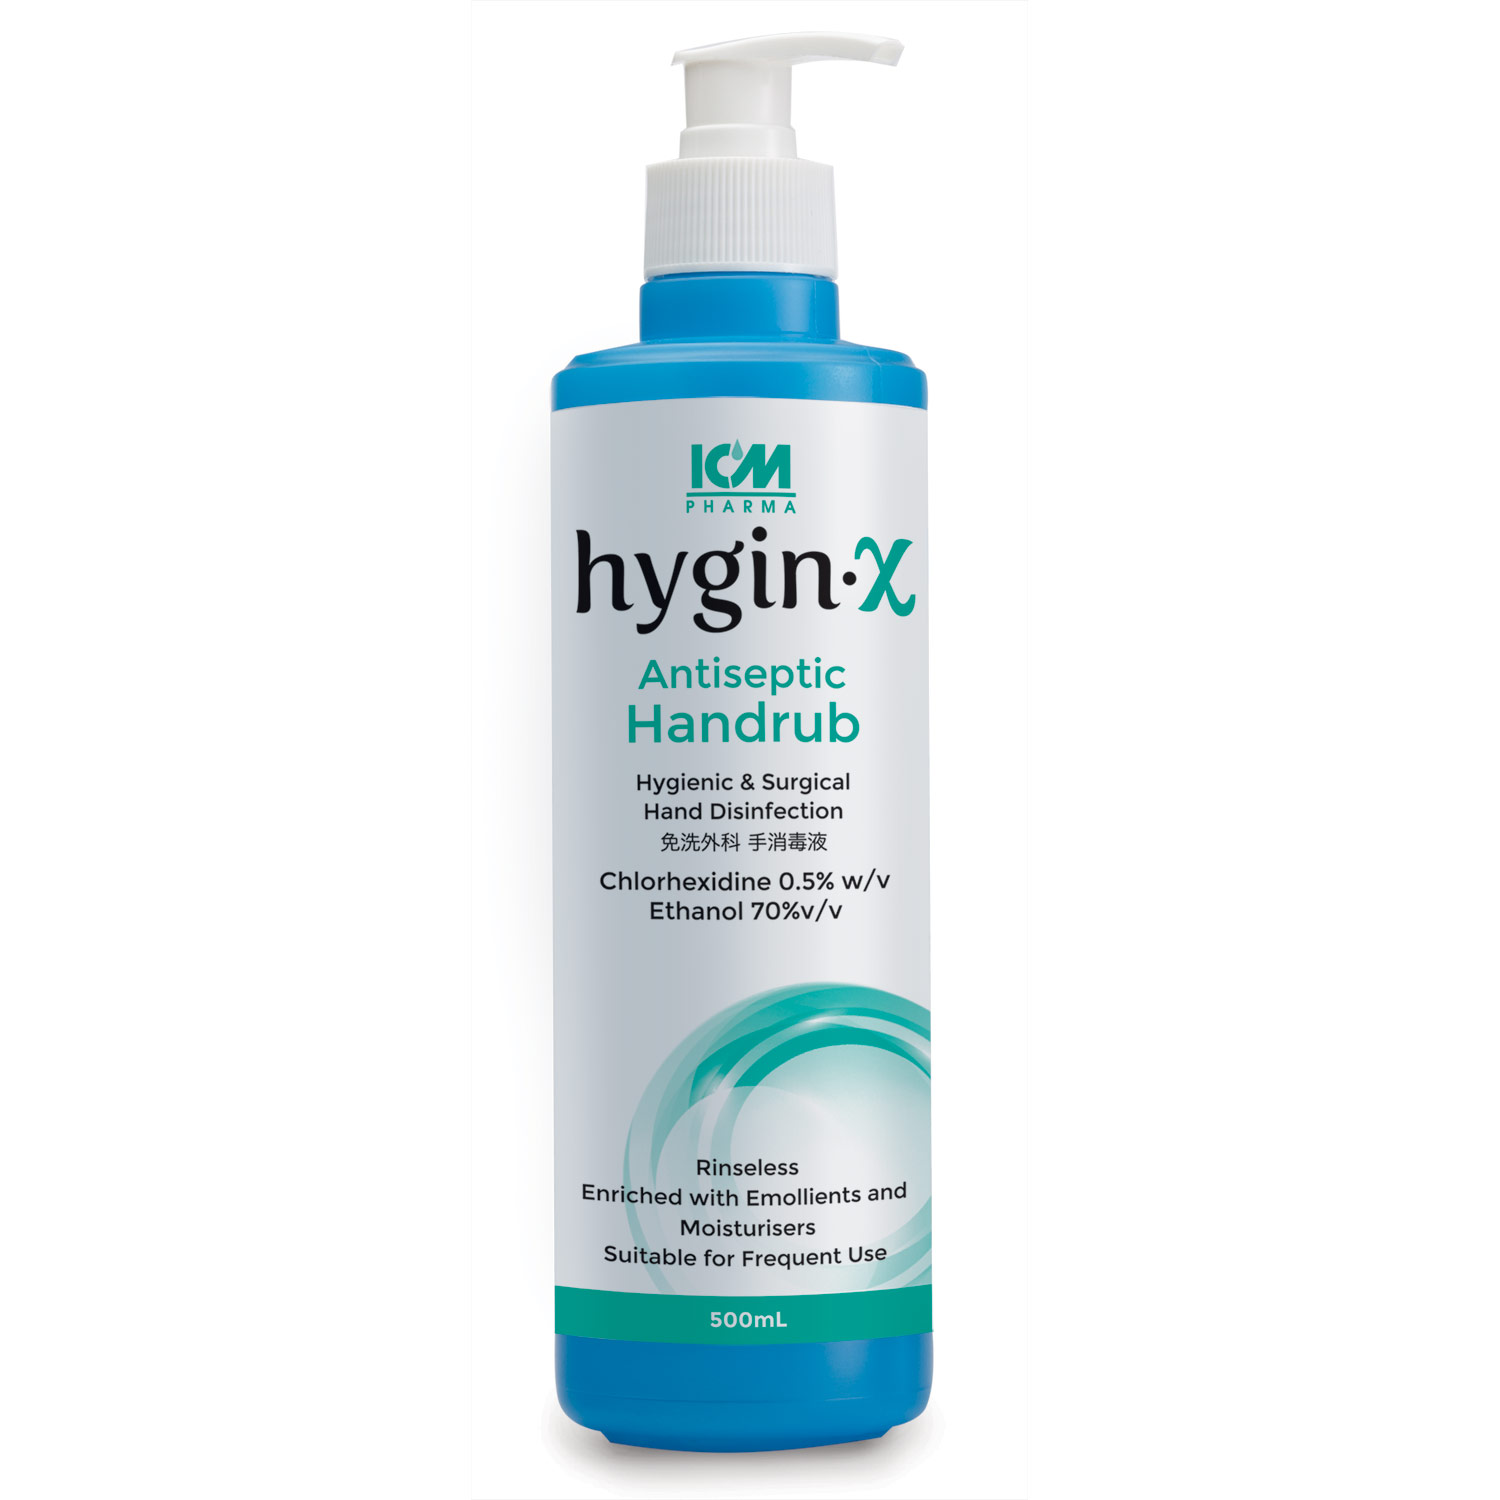 Hygin-X (HEXODANE) Antiseptic Handrub 500mL